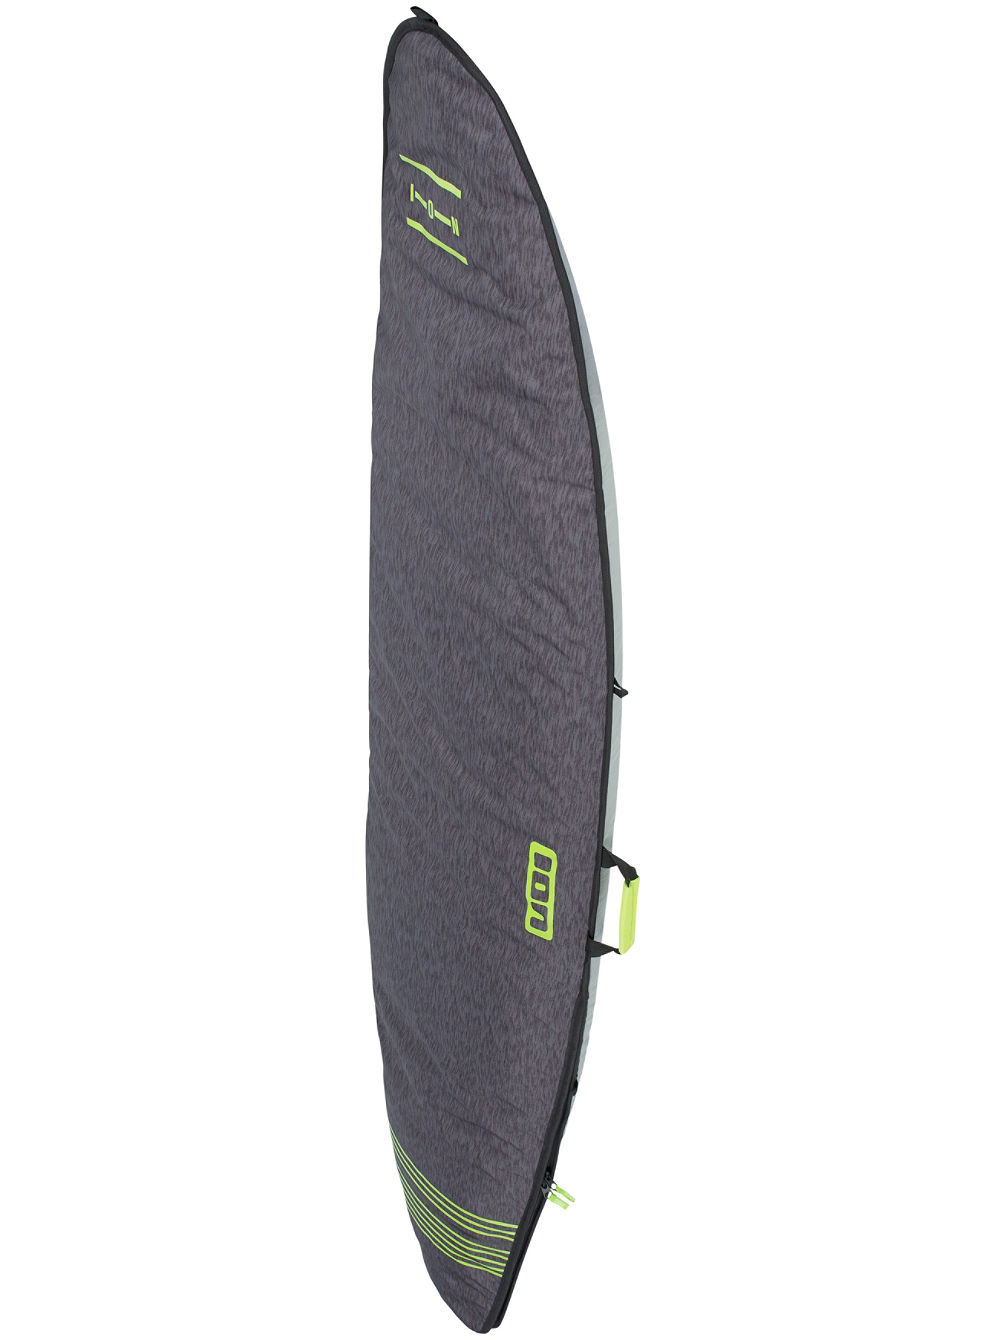 Sup Core 11.6x33 SUP Boardbag